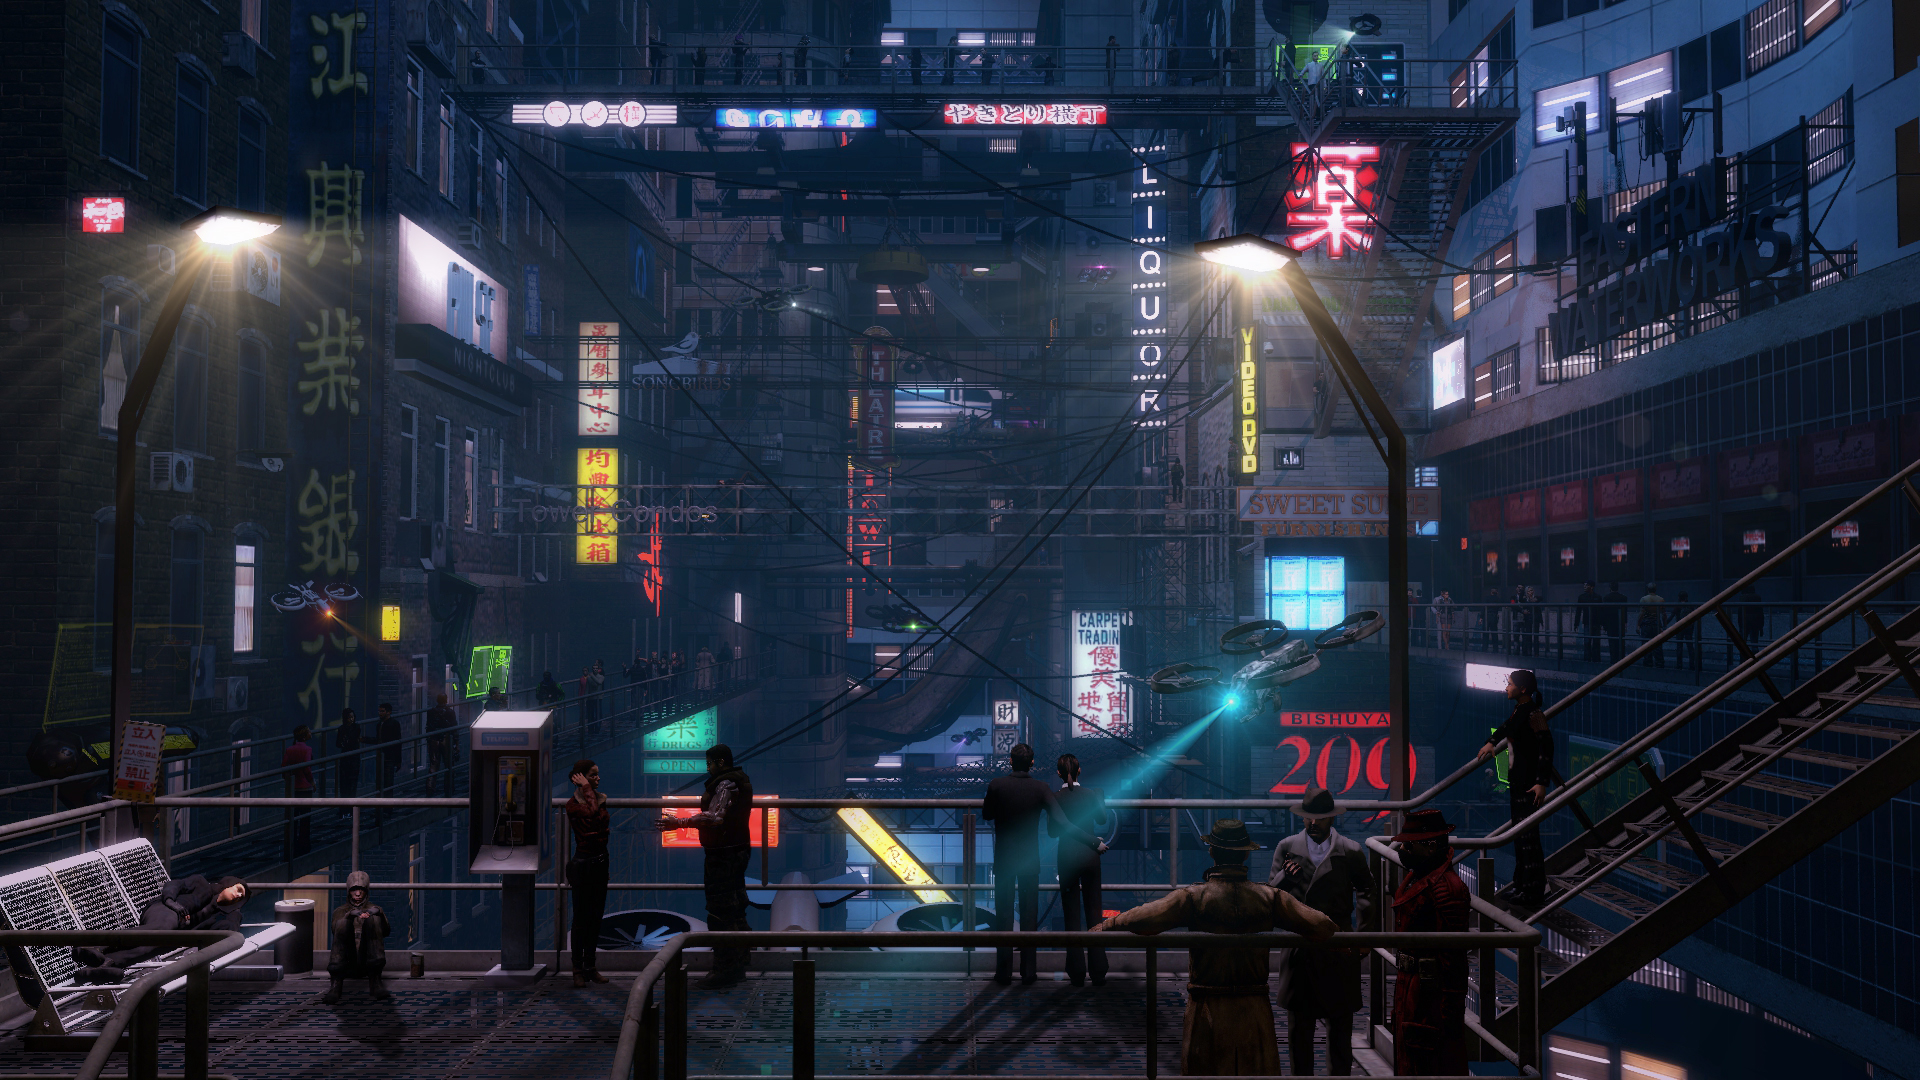 Best Bedroom In The World Cyberpunk Street By Konstantin3001 On Deviantart